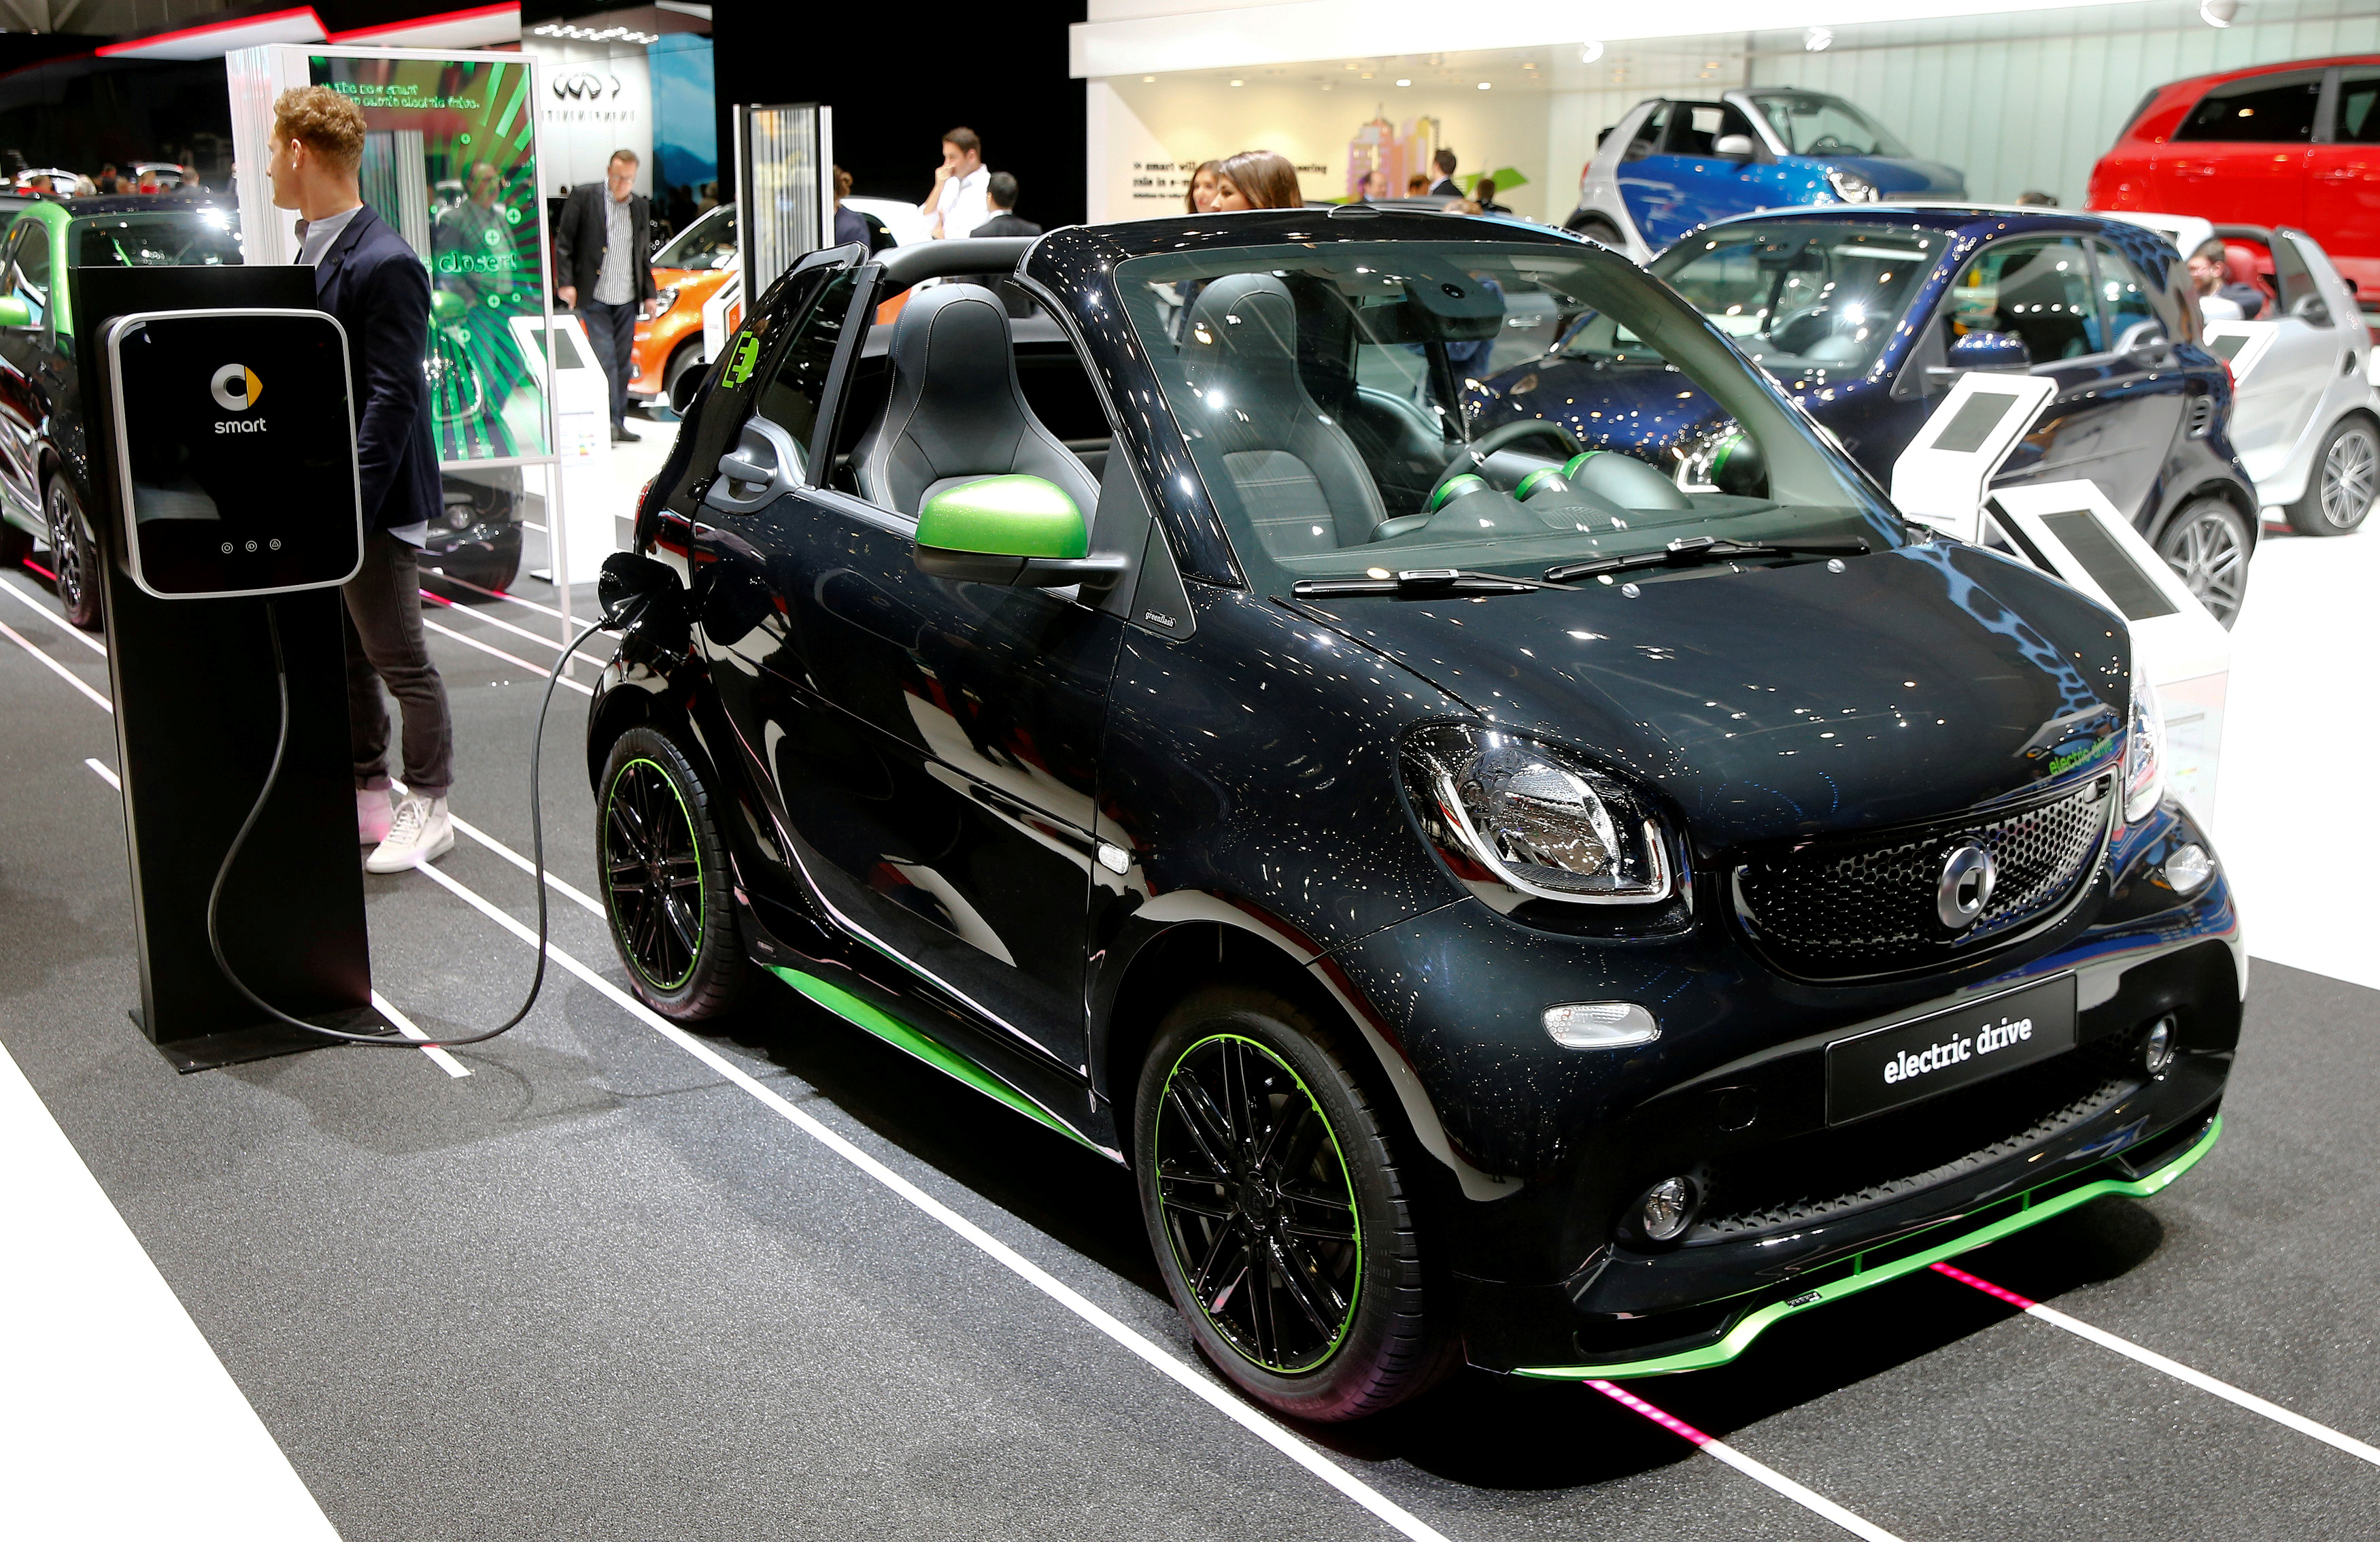 Geely takes 50% stake in Smart from Daimler